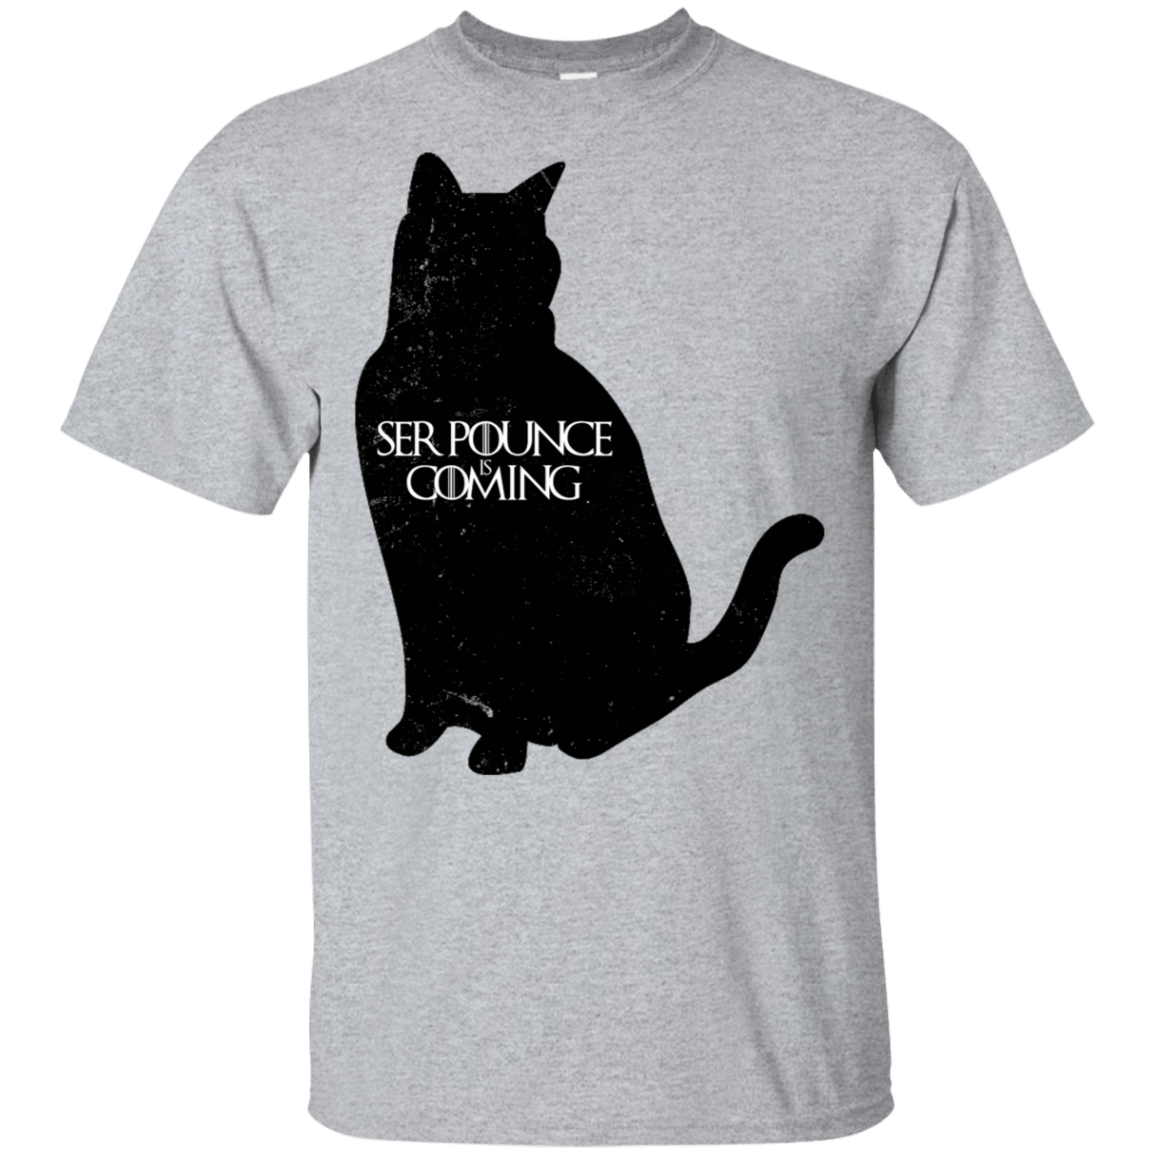 Ser Pounce is Coming T-Shirt